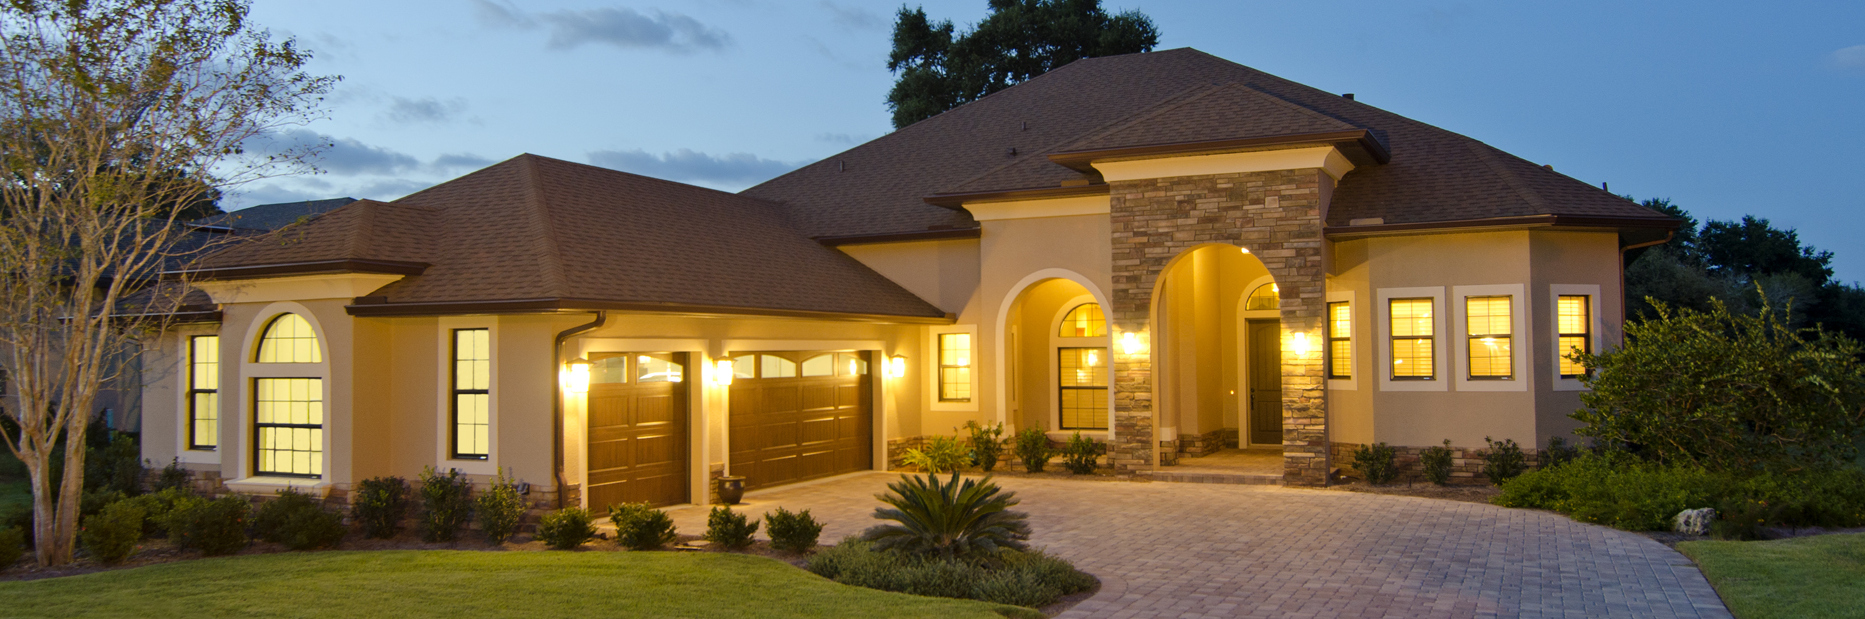 Florida golf course homes harbor hills country club lady for Florida house plans for sale